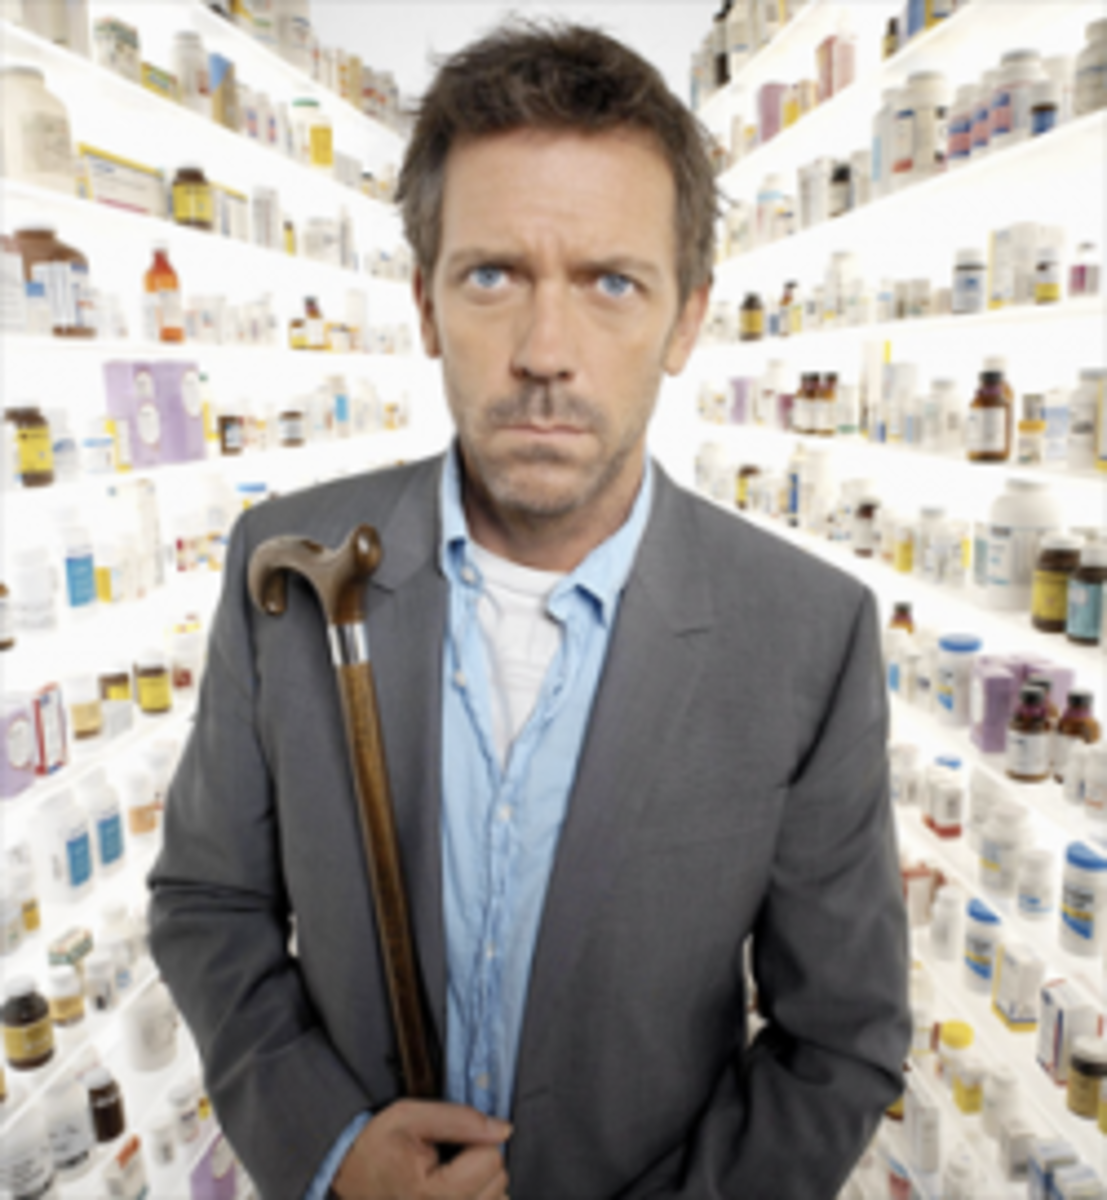 House (Hugh Laurie) Atheist